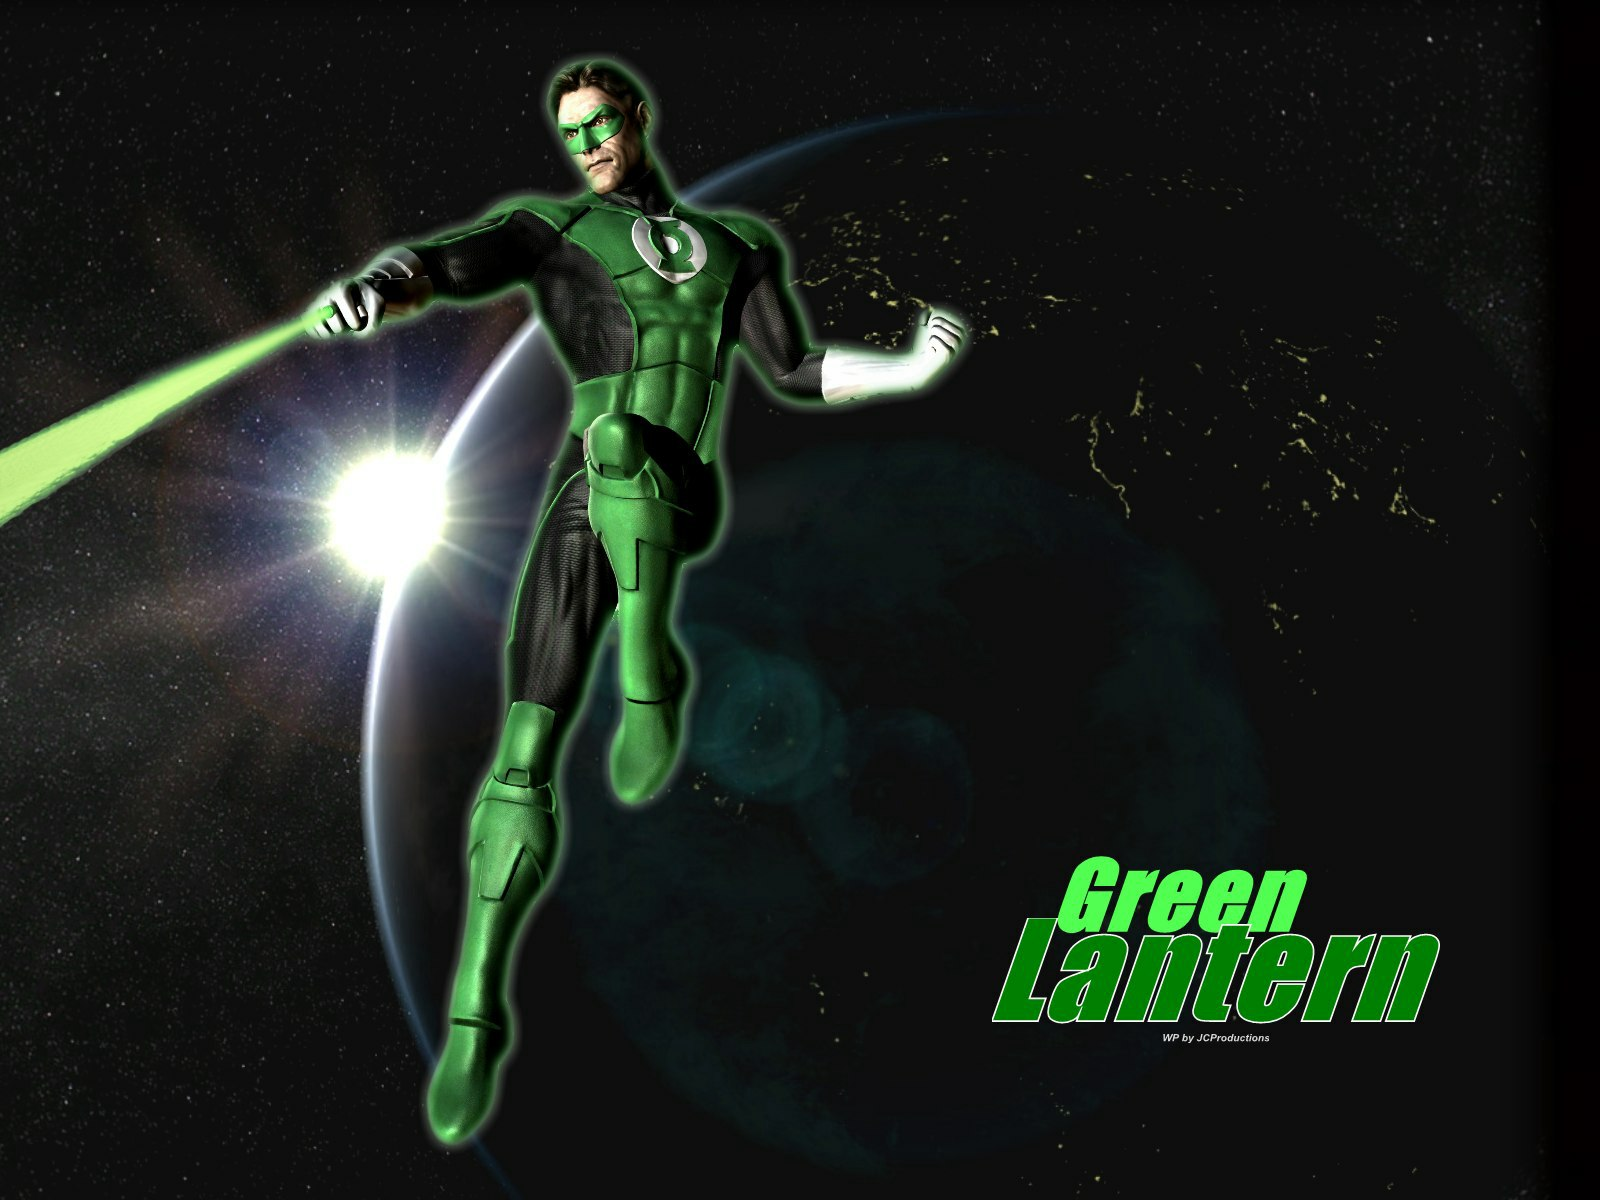 green lantern images green lantern hd wallpaper and background photos 26956696